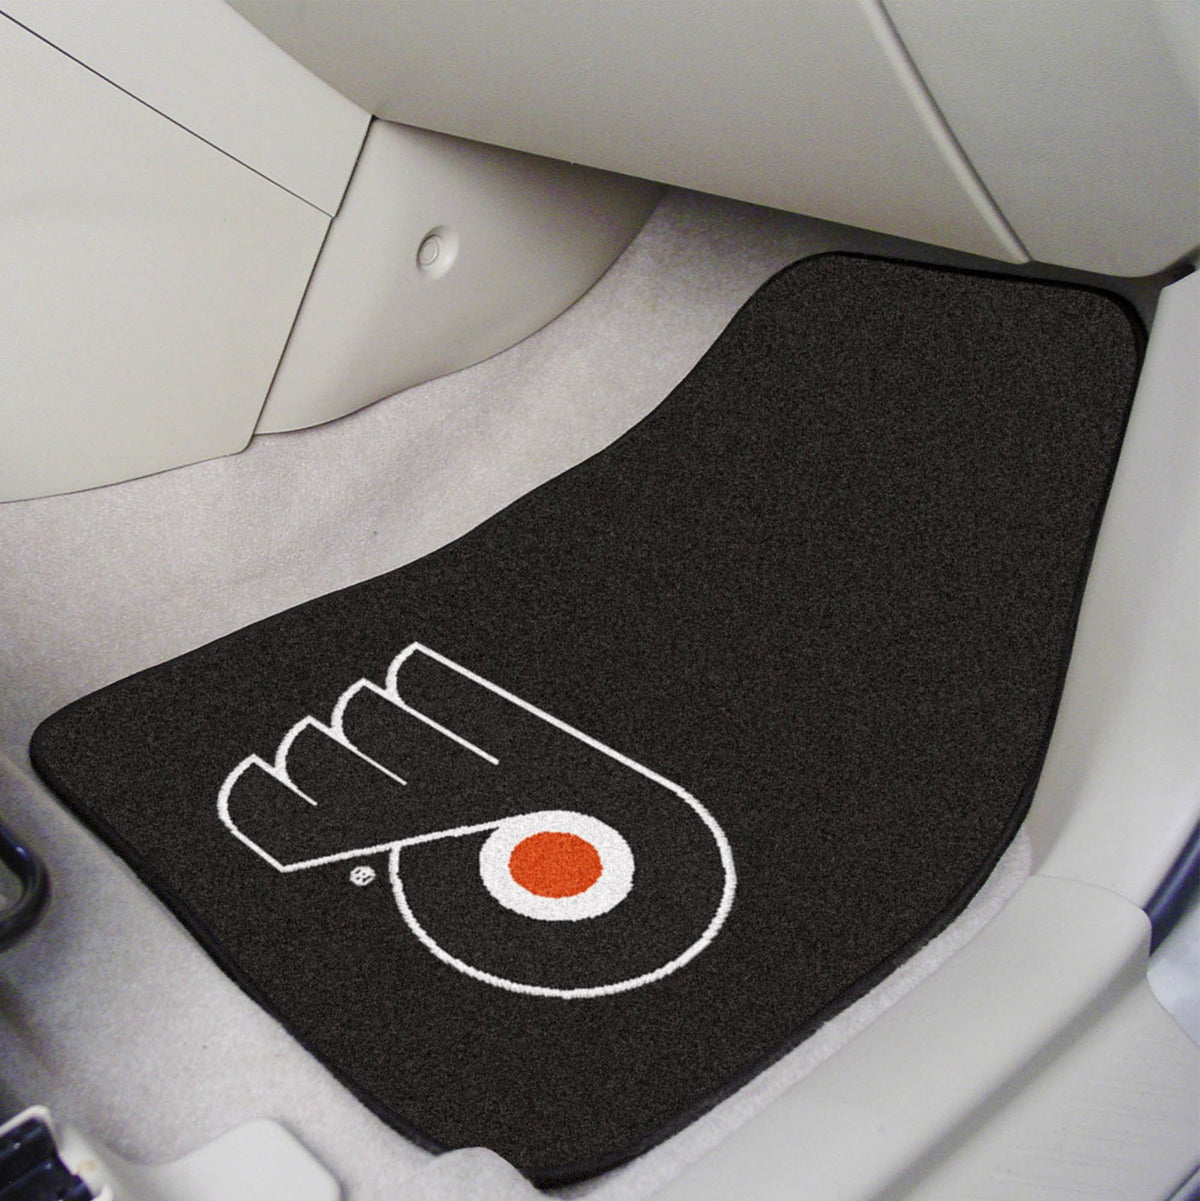 NHL - Carpet Car Mat, 2-Piece Set NHL Mats, Front Car Mats, 2-pc Carpet Car Mat Set, NHL, Auto Fan Mats Philadelphia Flyers